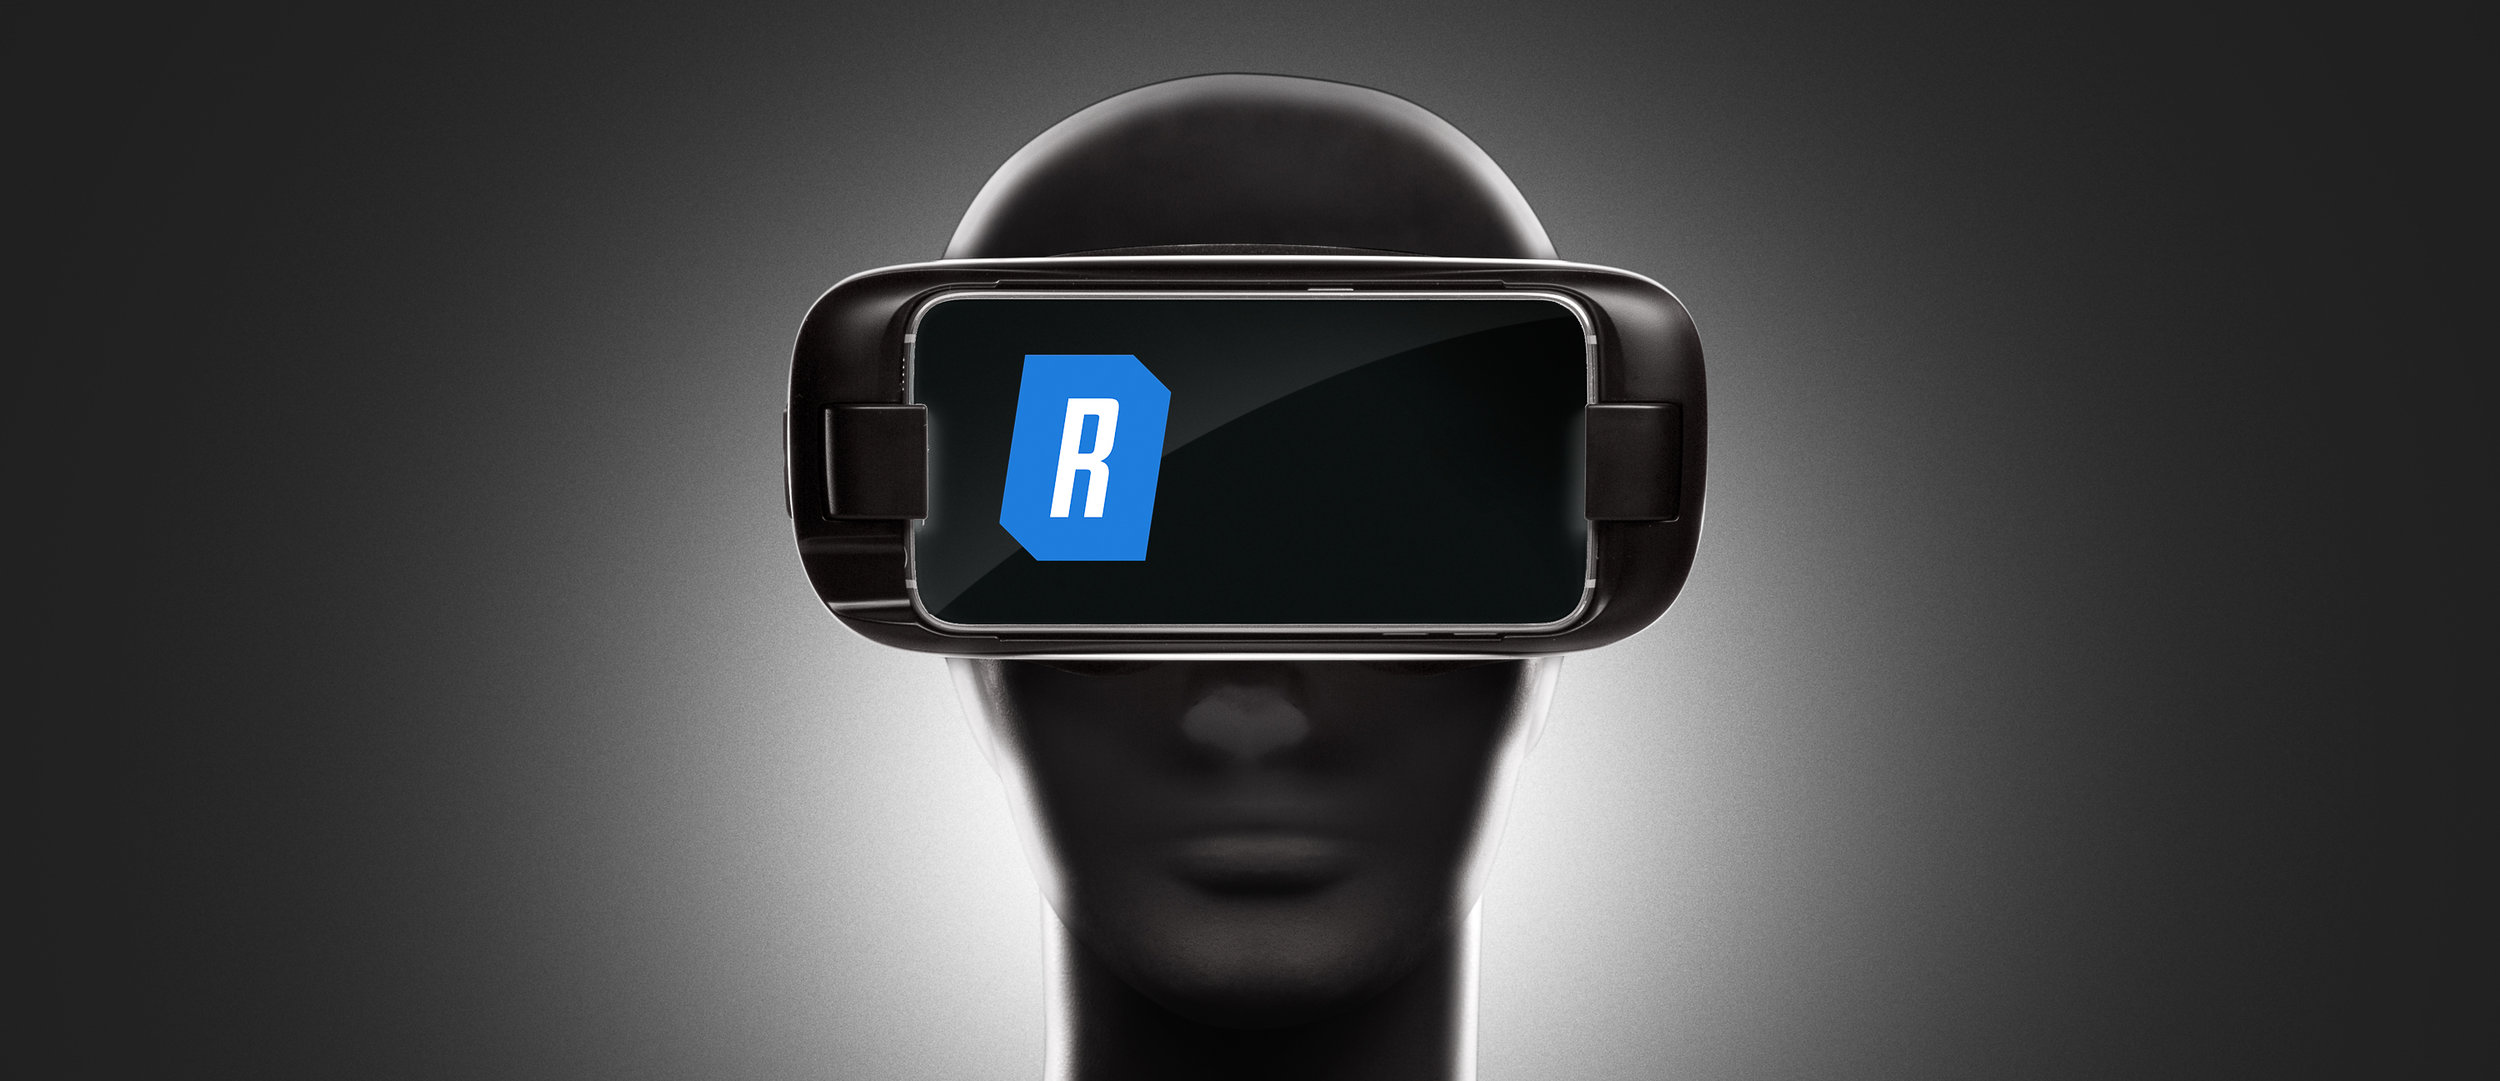 Evox's VR automotive consumer facing research app available across multiple platforms.